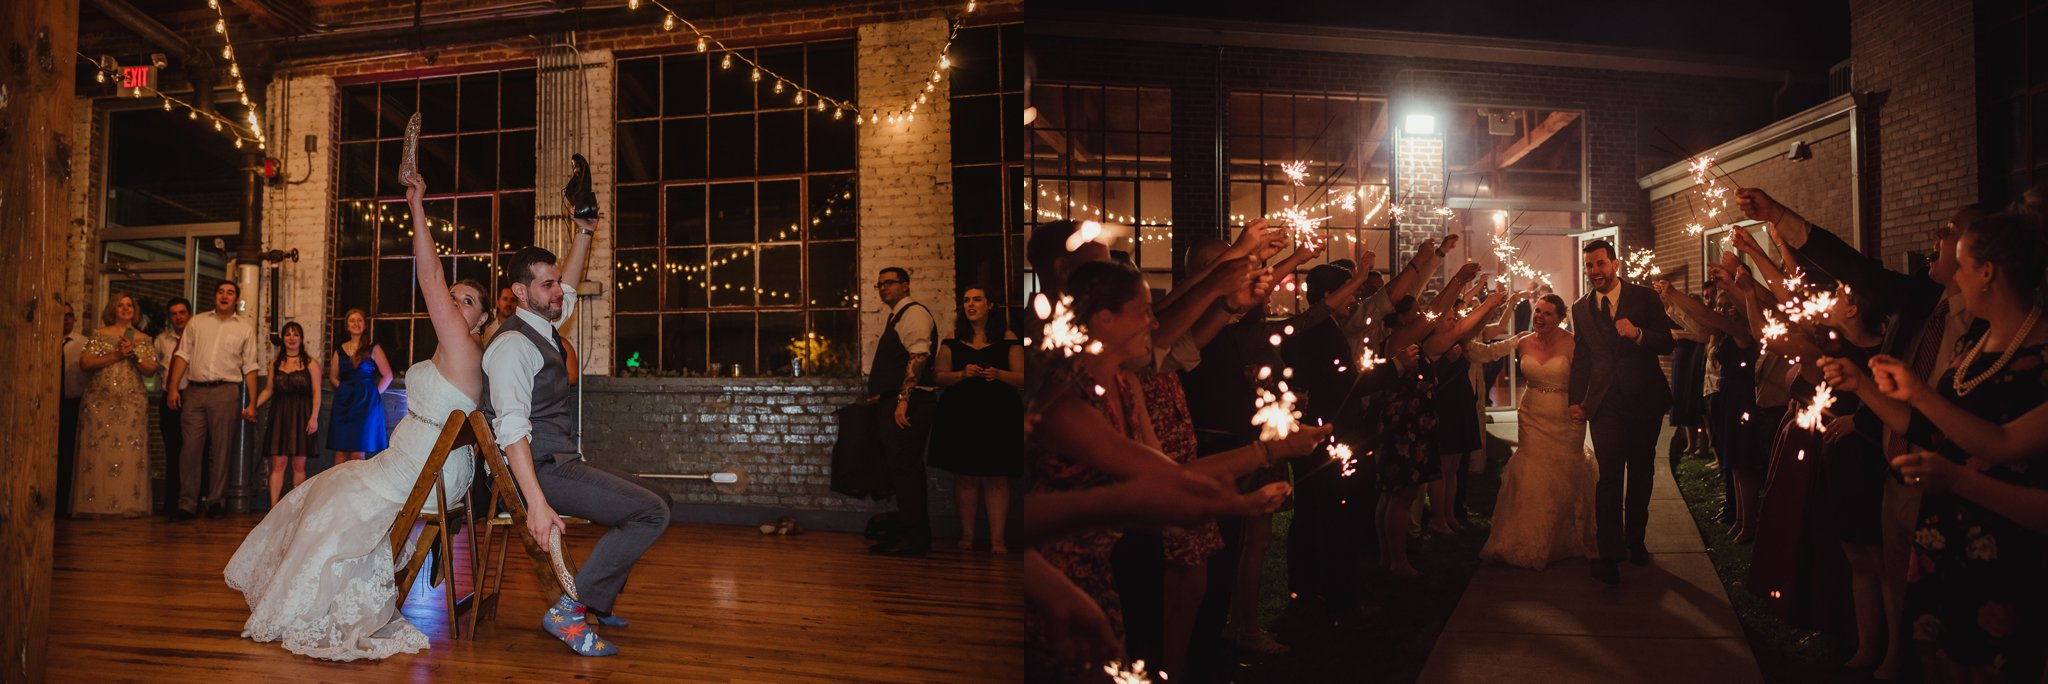 The bride and groom played the shoe game and got ready for sparklers at their wedding reception in Raleigh, North Carolina, pictures by Rose Trail Images.